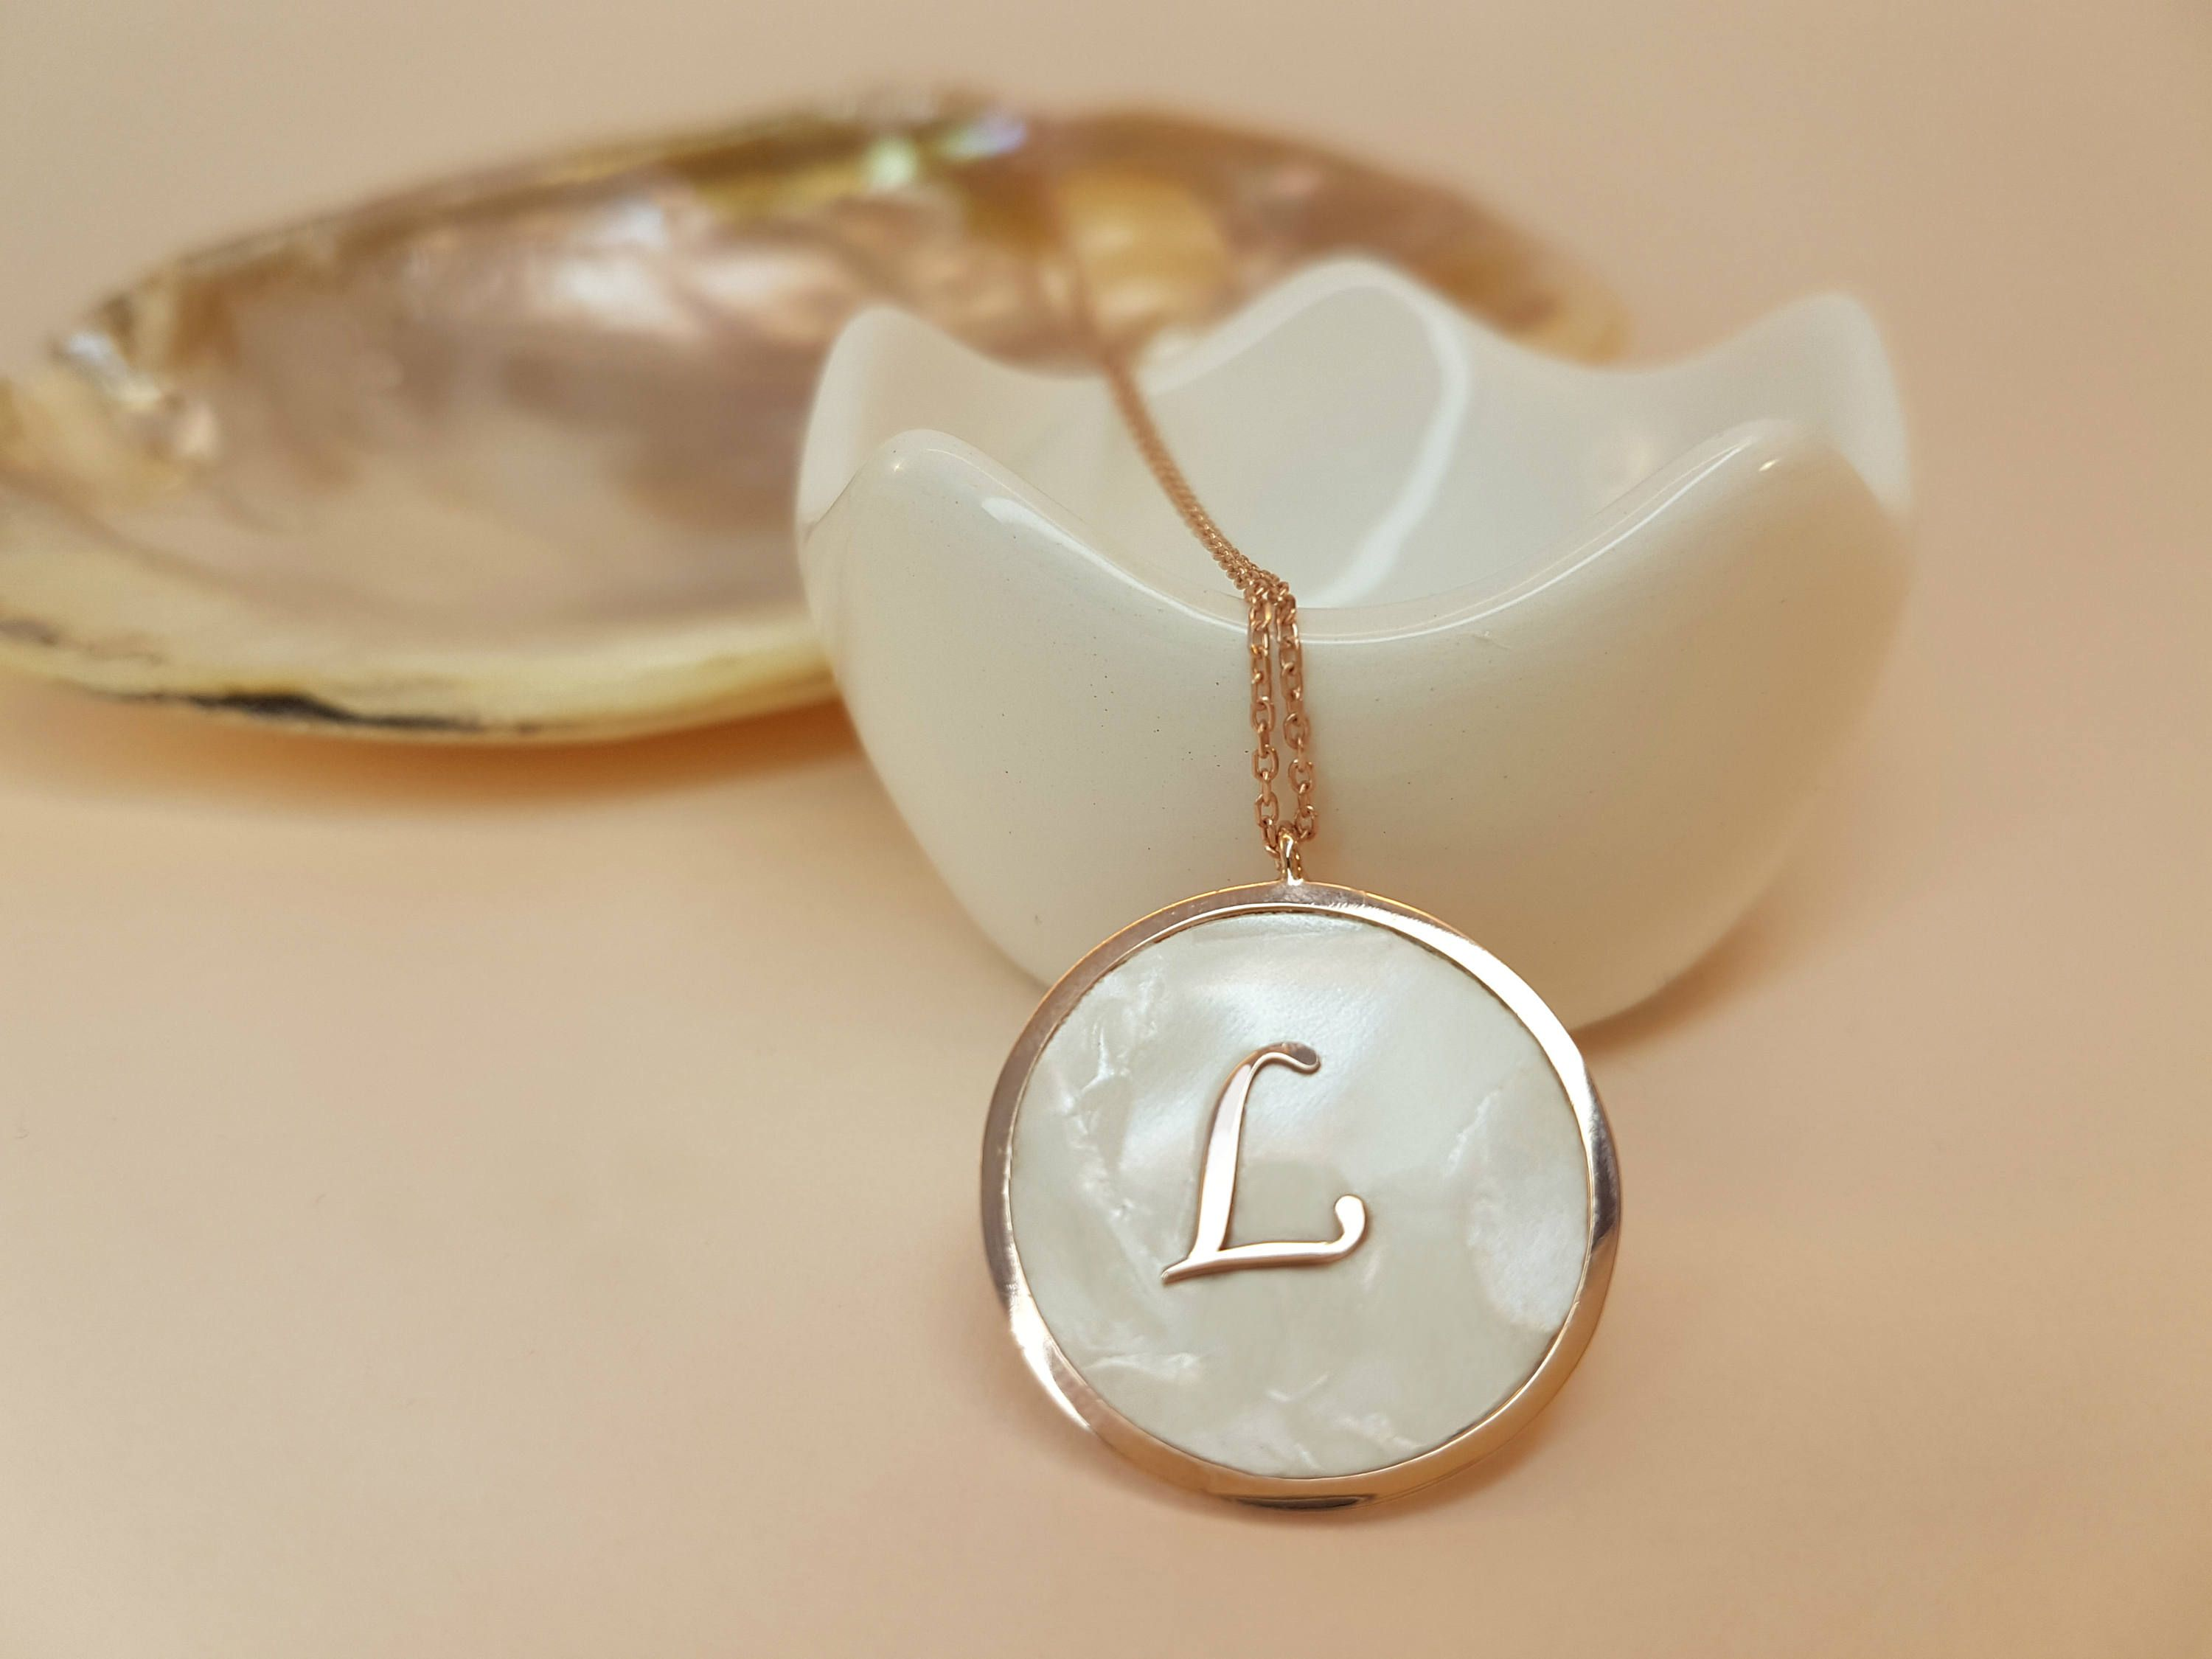 Initial l monogram mother of pearl necklace mother of pearl initial l monogram mother of pearl necklace mother of pearl initial pendant customized aloadofball Gallery